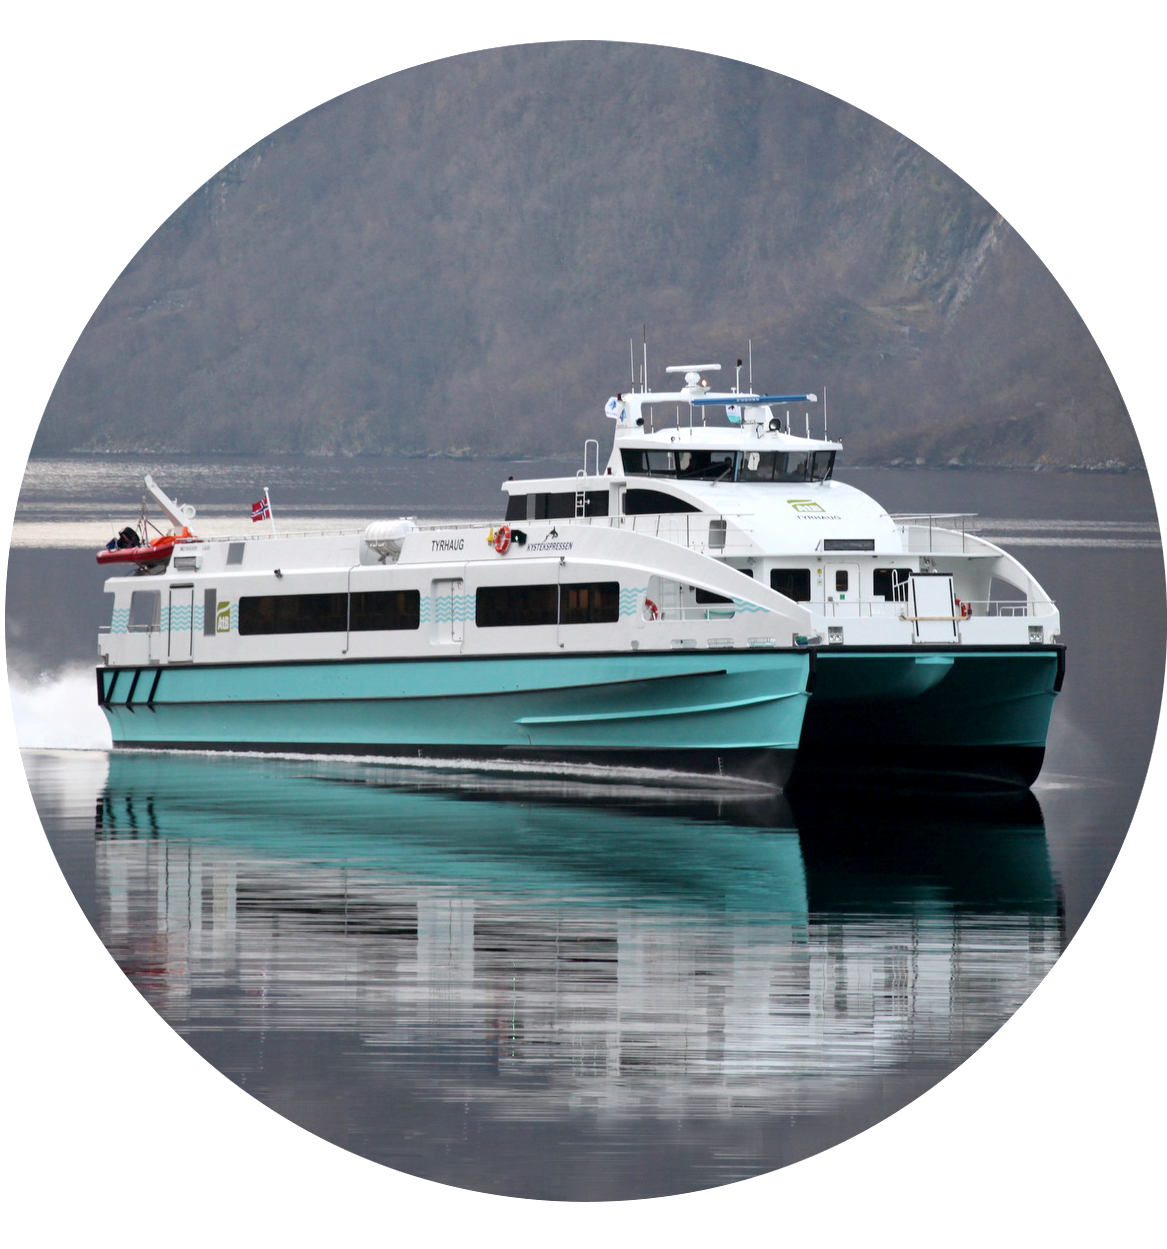 Delivered in 2014, M/S Terningen lowered fuel consumption by 40% when it replaced the aluminium vessel